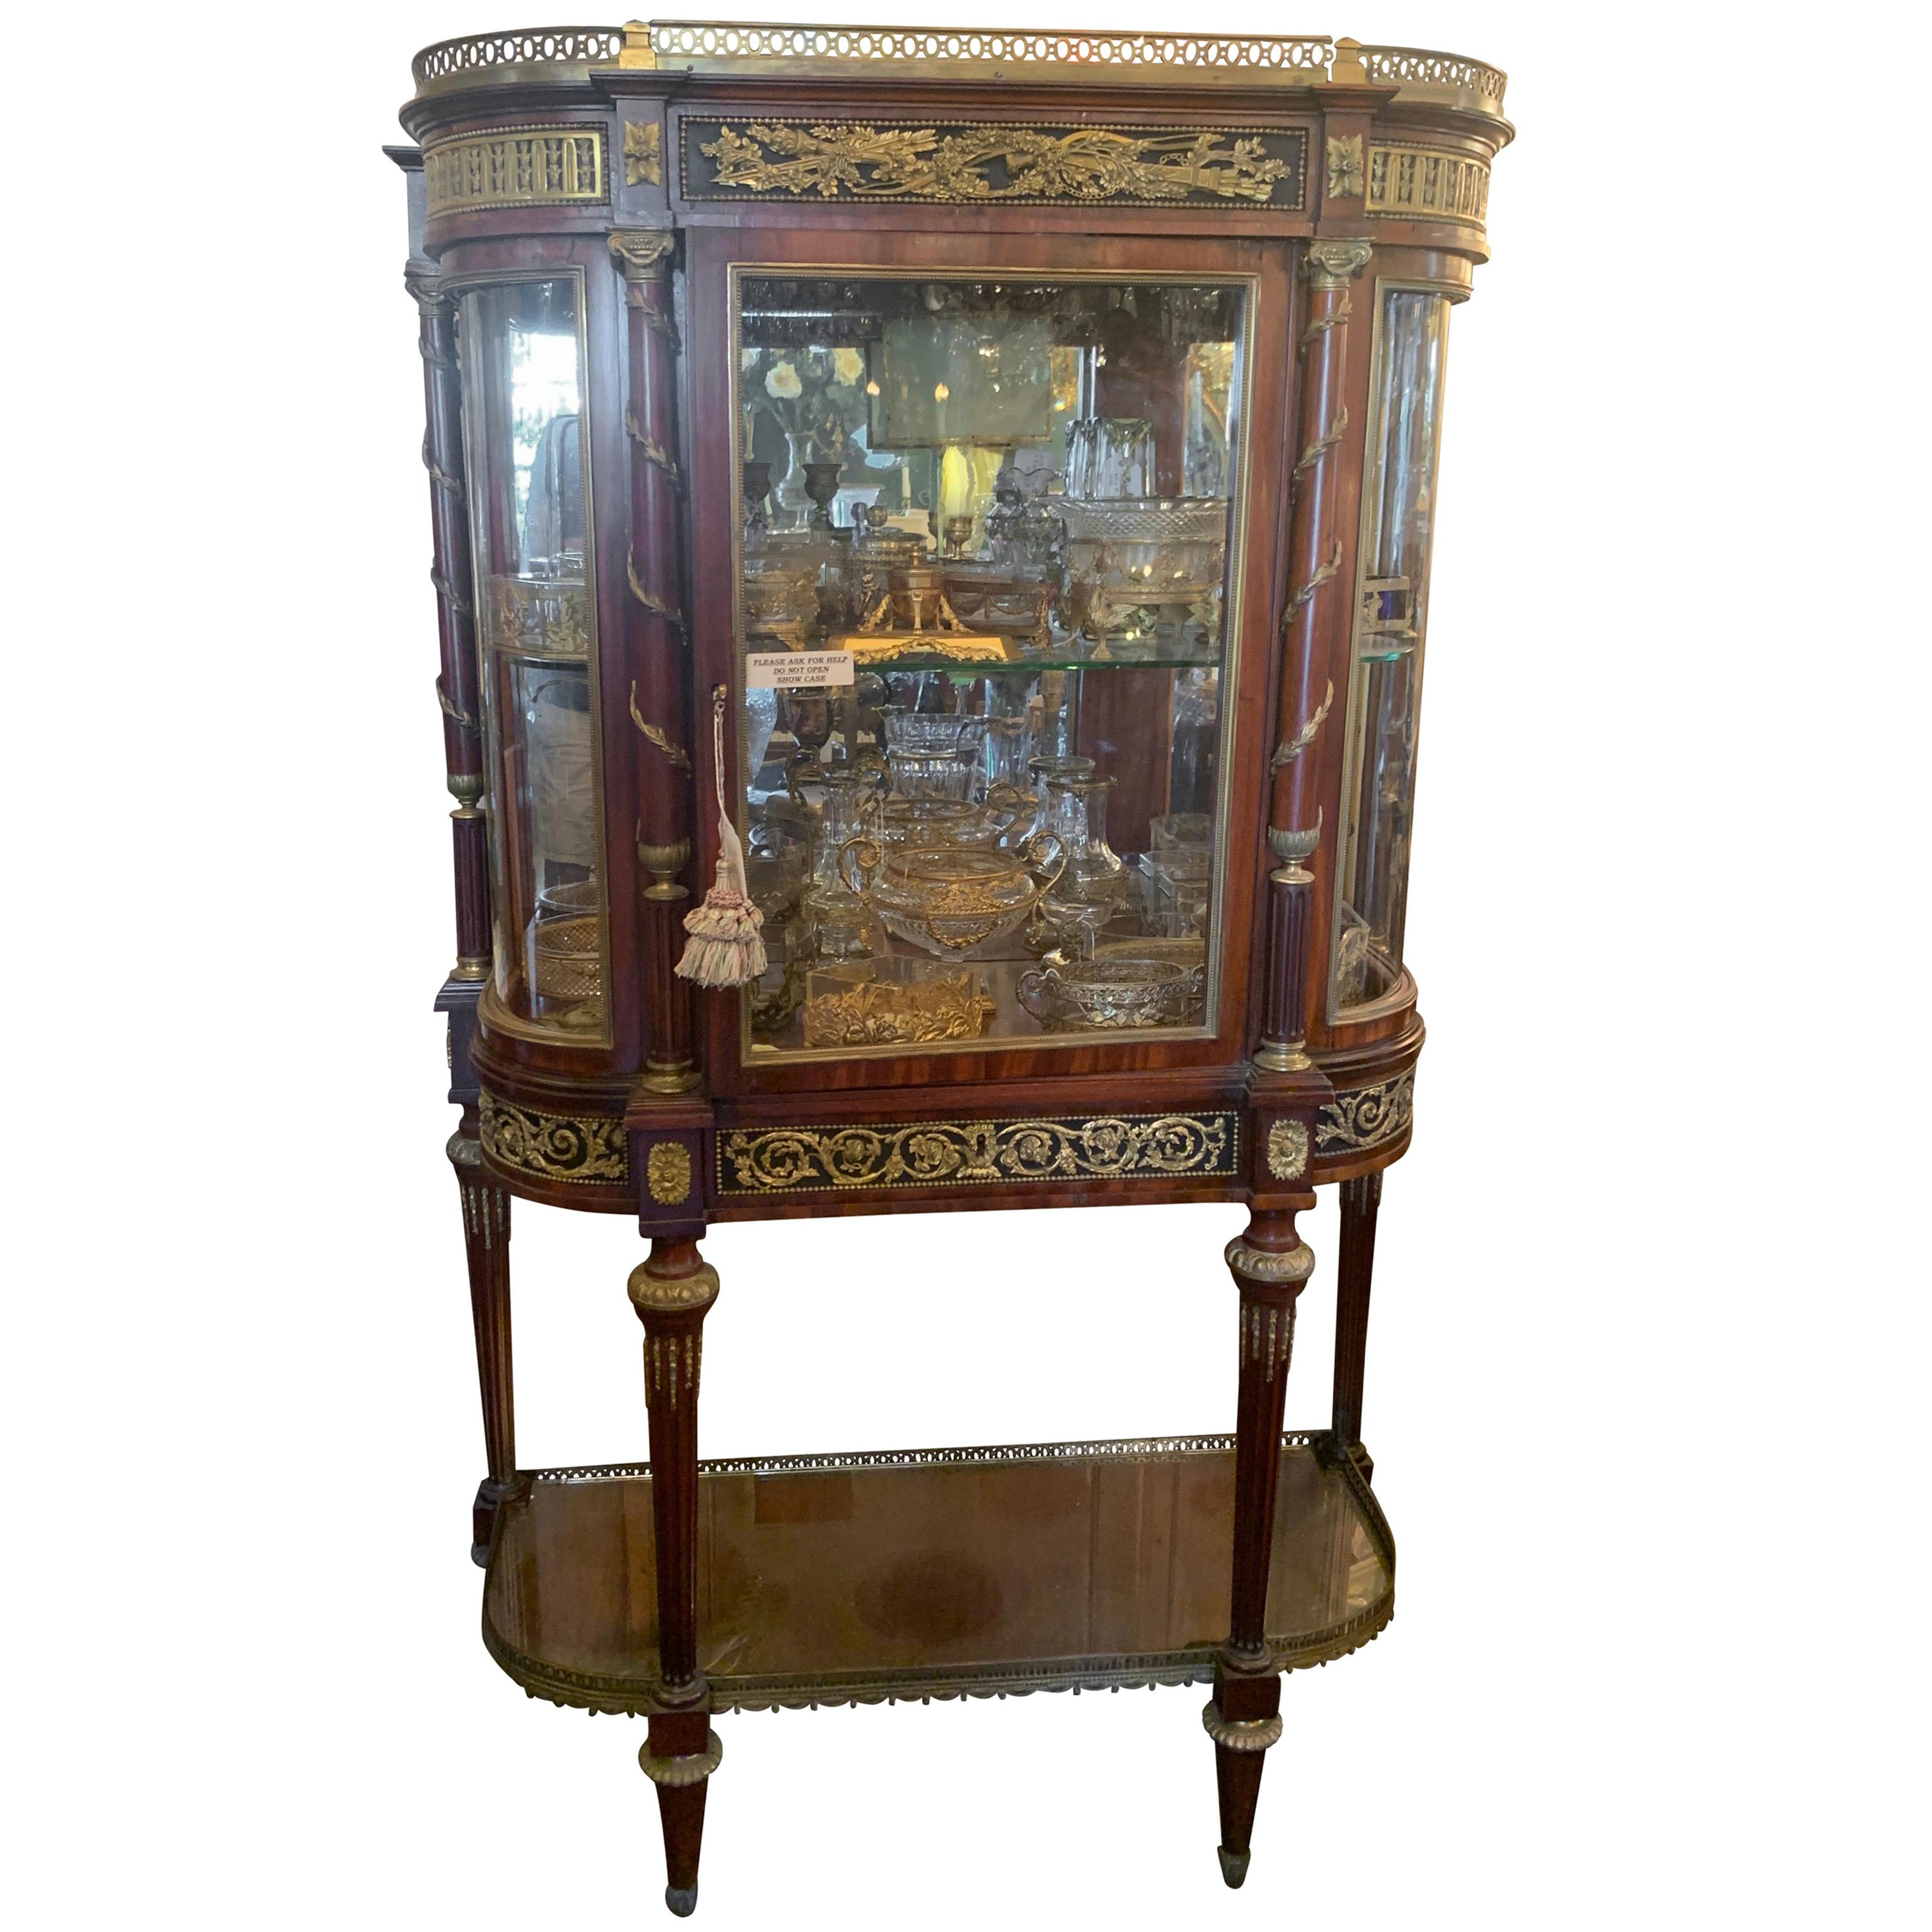 Outstanding 19th Century French Rosewood Ormolu Bronze Mounting Vitrine Curio